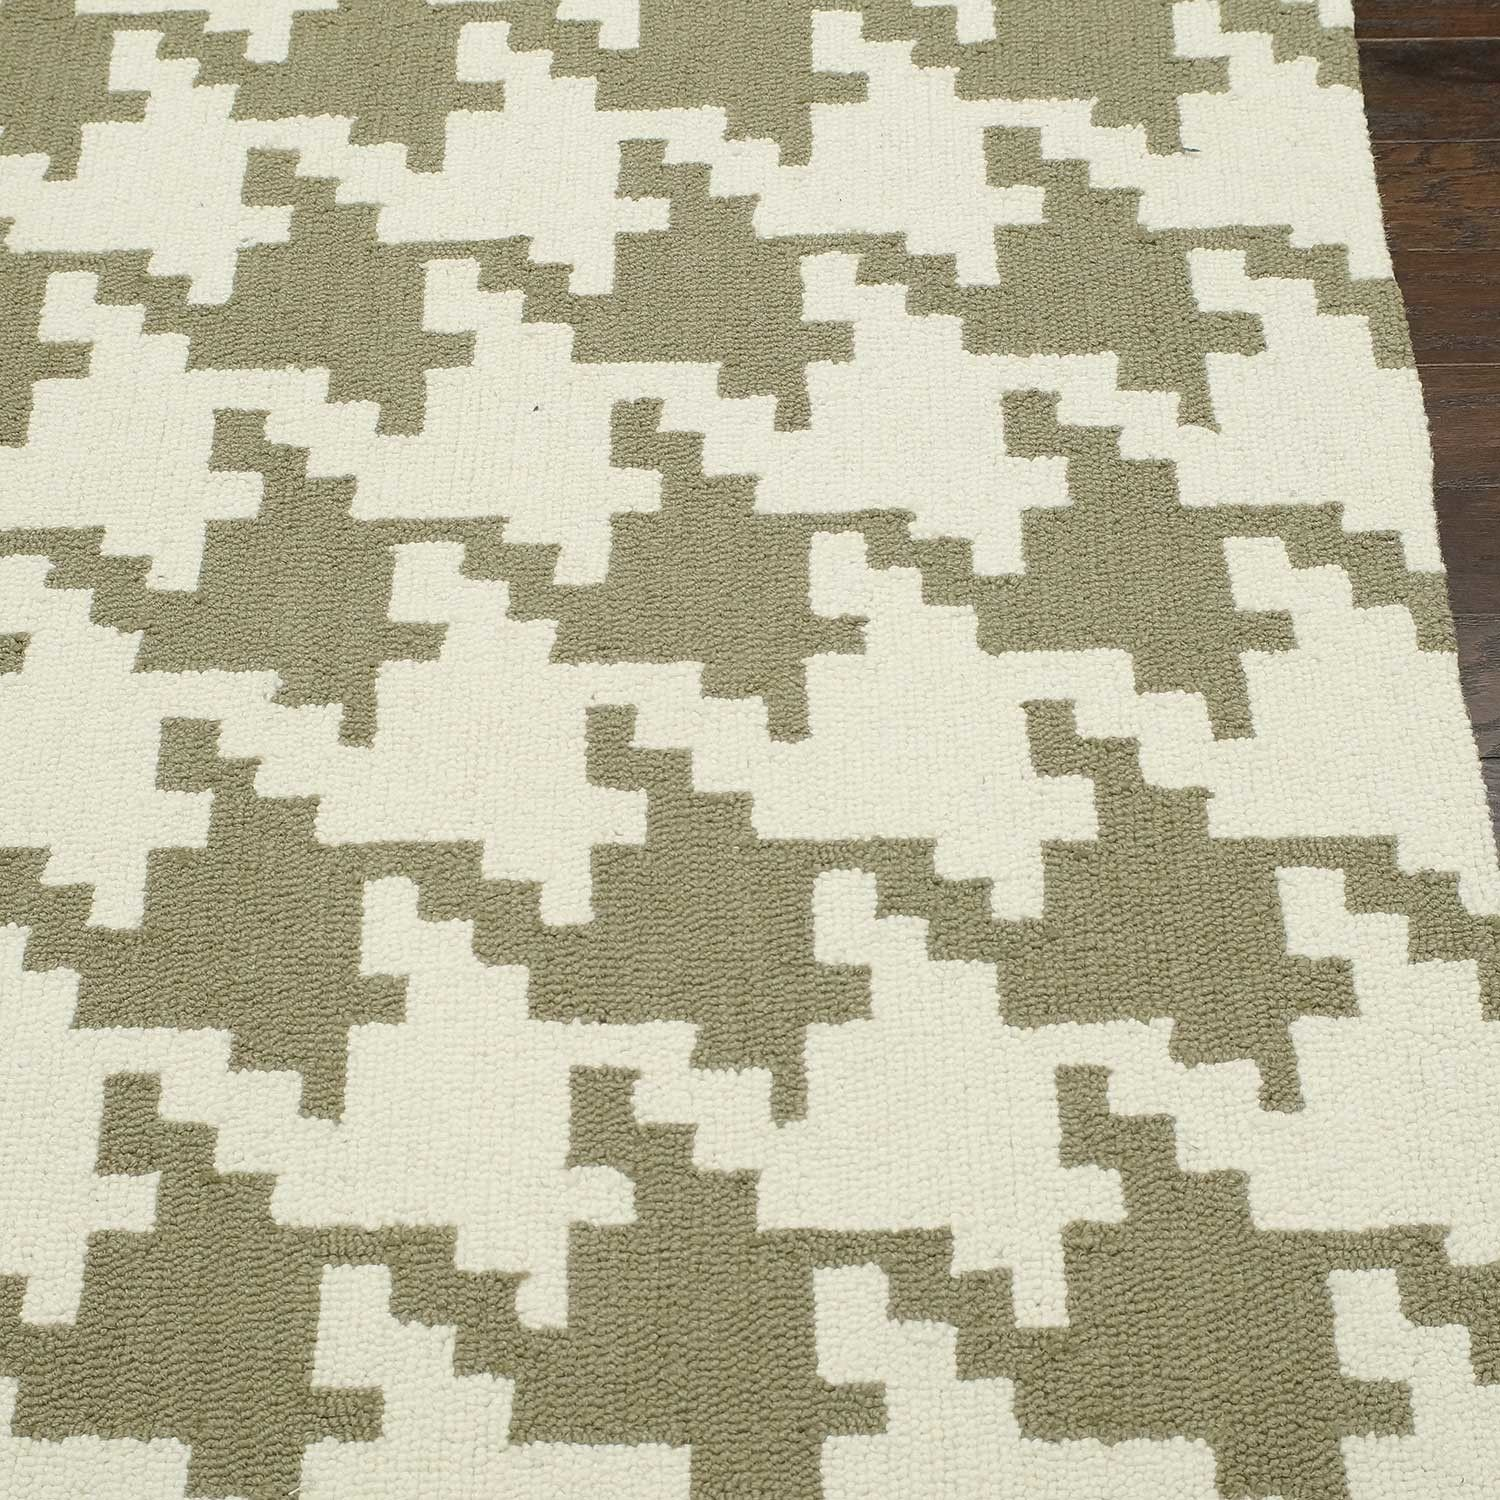 Hand Hooked Rug // Houndstooth // Brown (5' x 8')